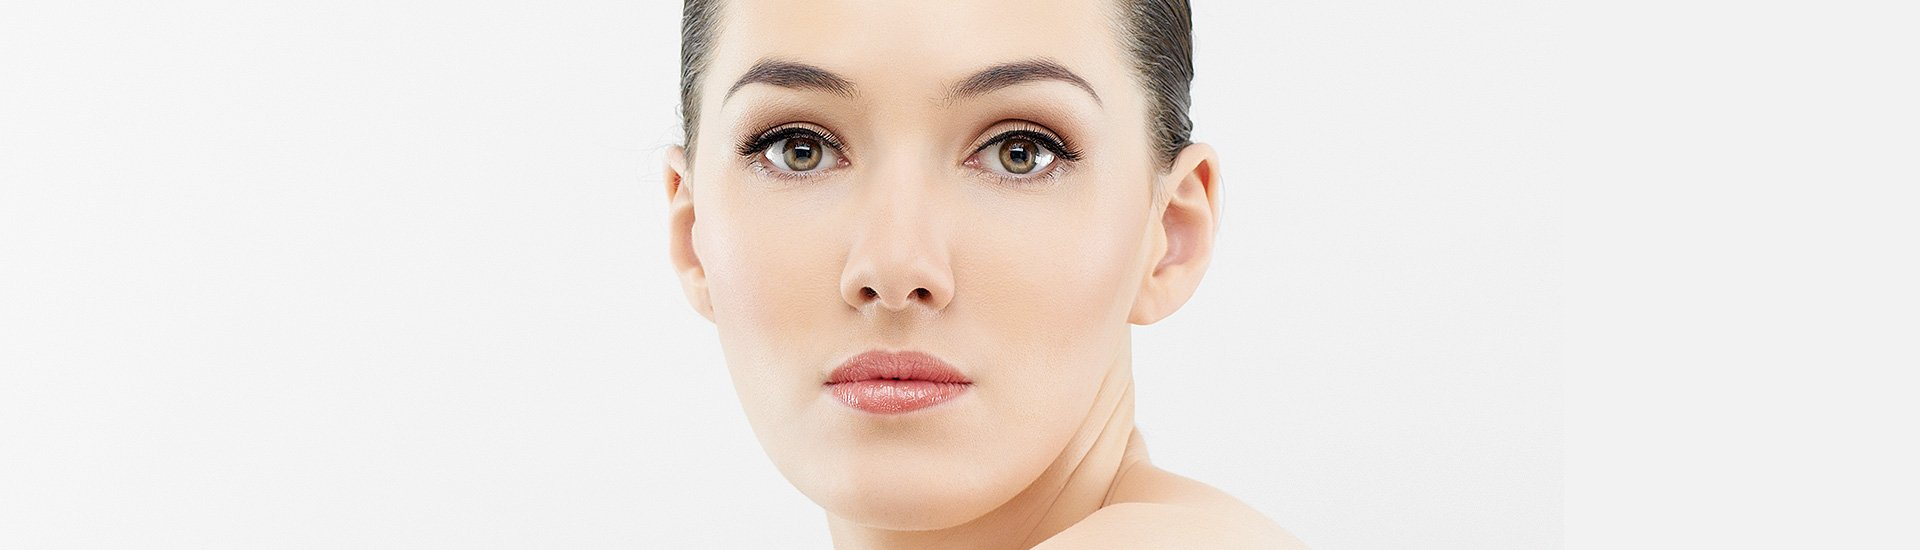 a lady after the derma roller therapy